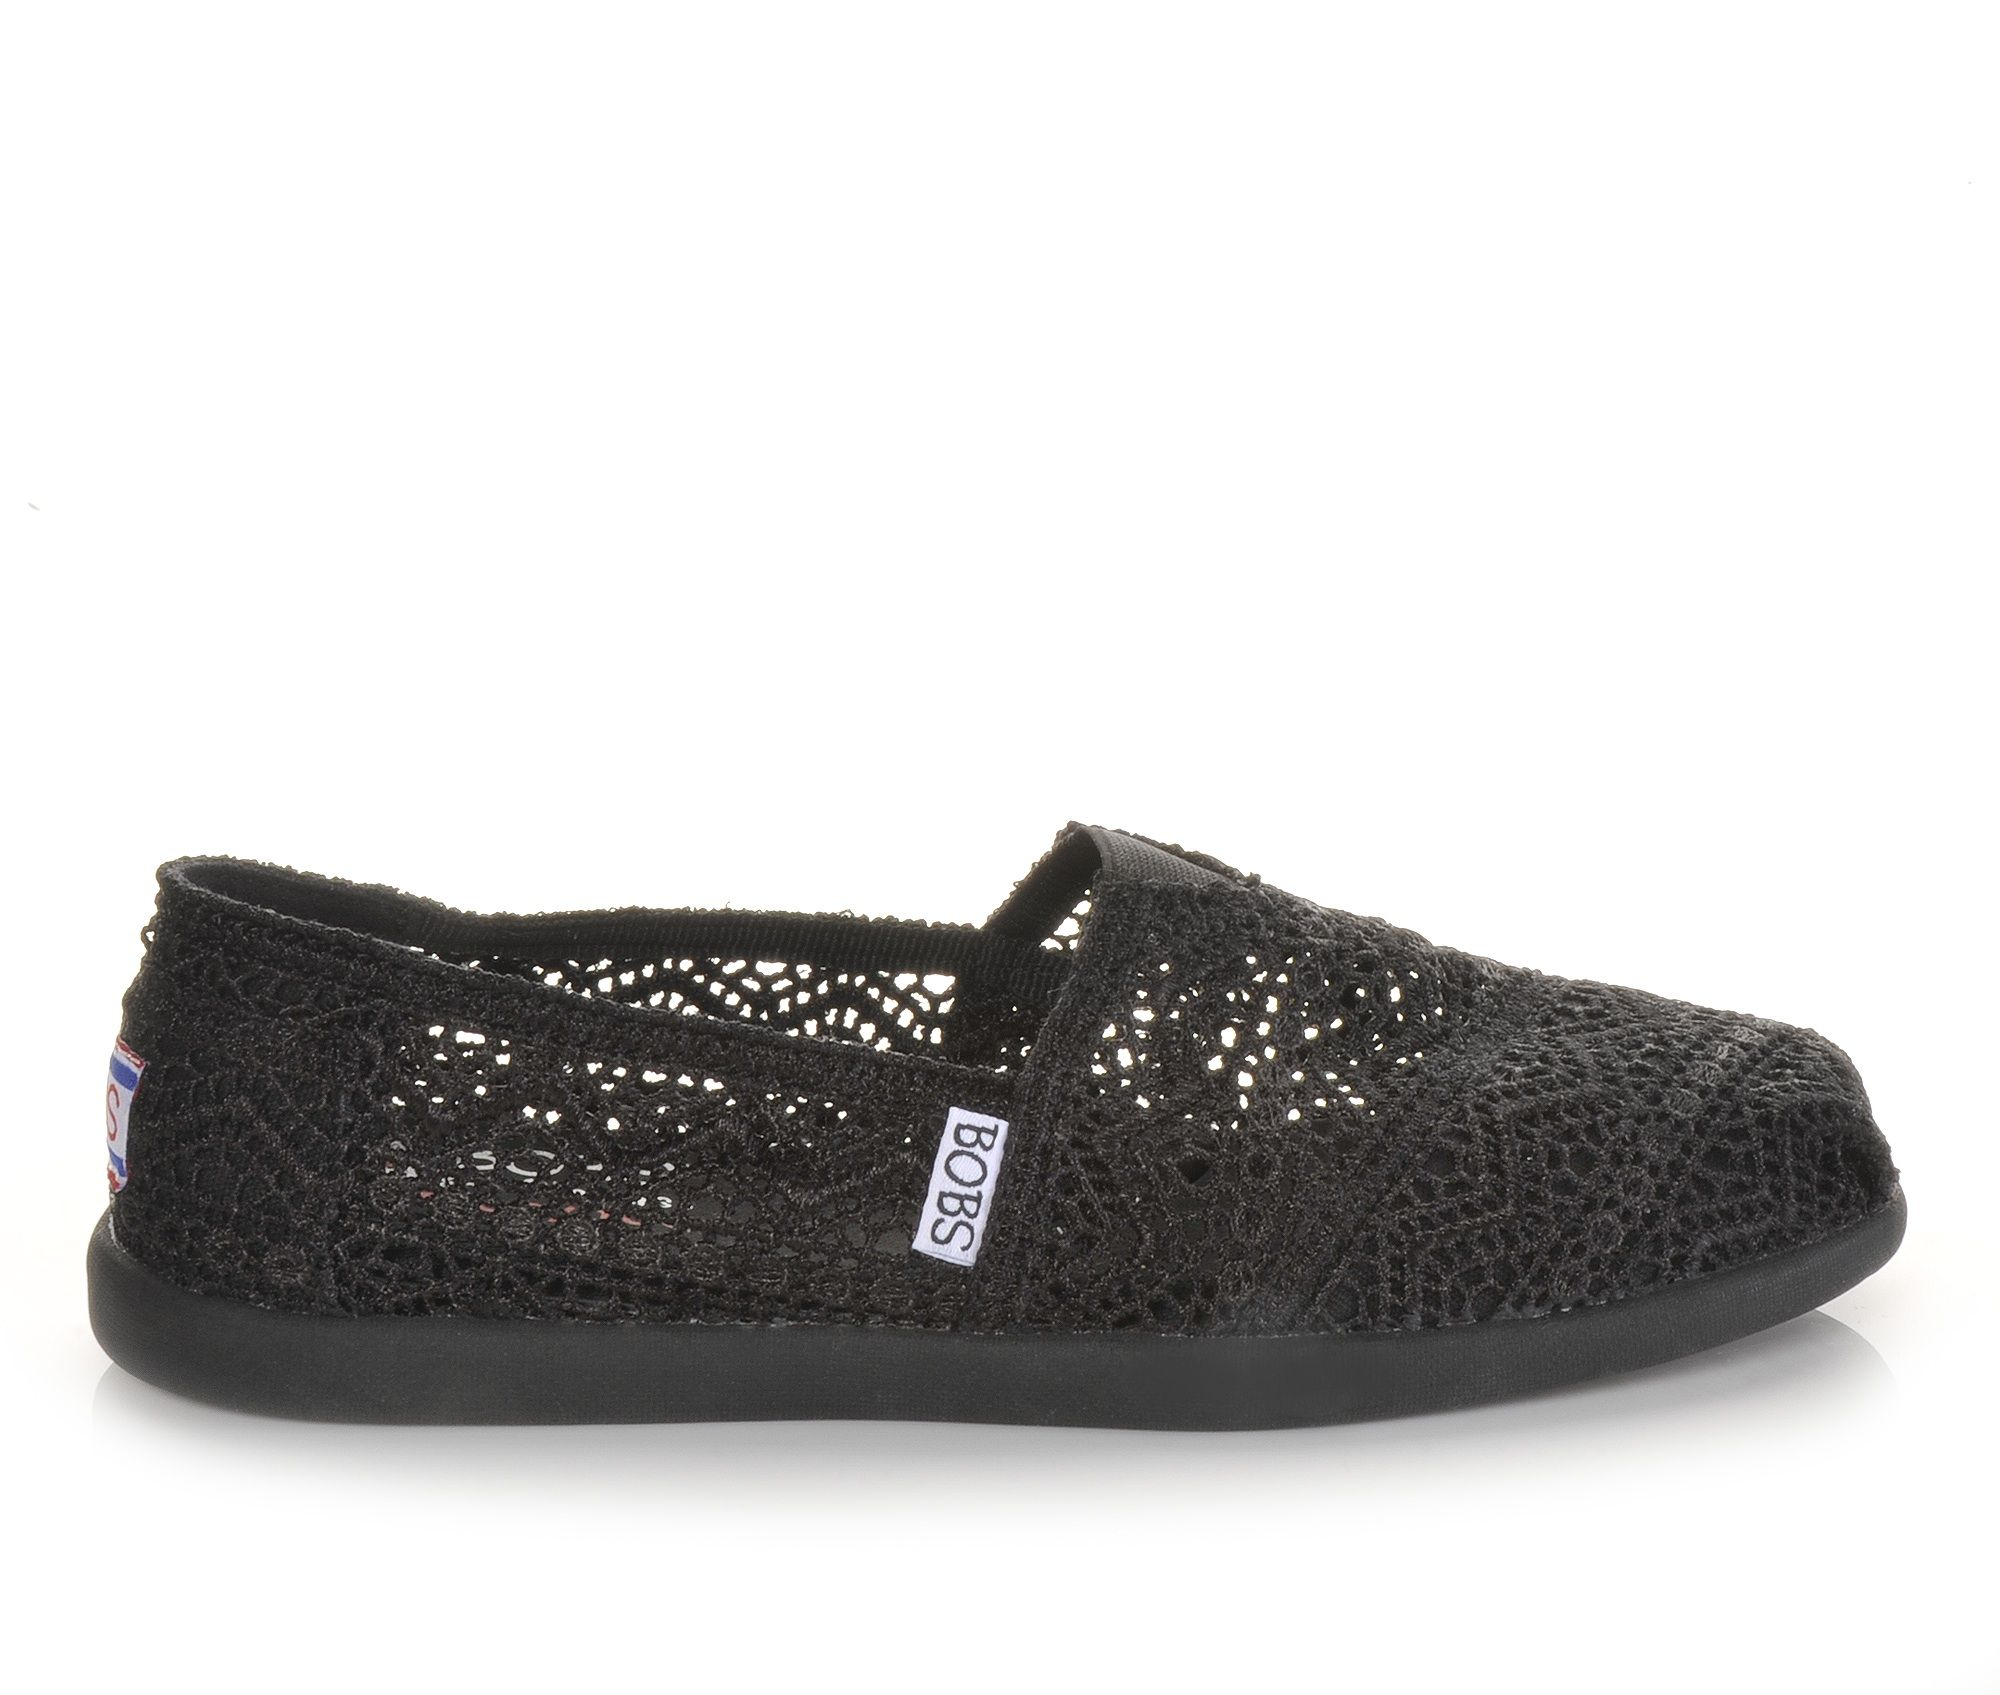 d6c27c8c132 We can t wait to pair these Skechers Bobs Slip-Ons with our favorite skinny  jeans and a flowy top!  Bobs  Skechers  crochet  lace  shoes  cool  cute   style